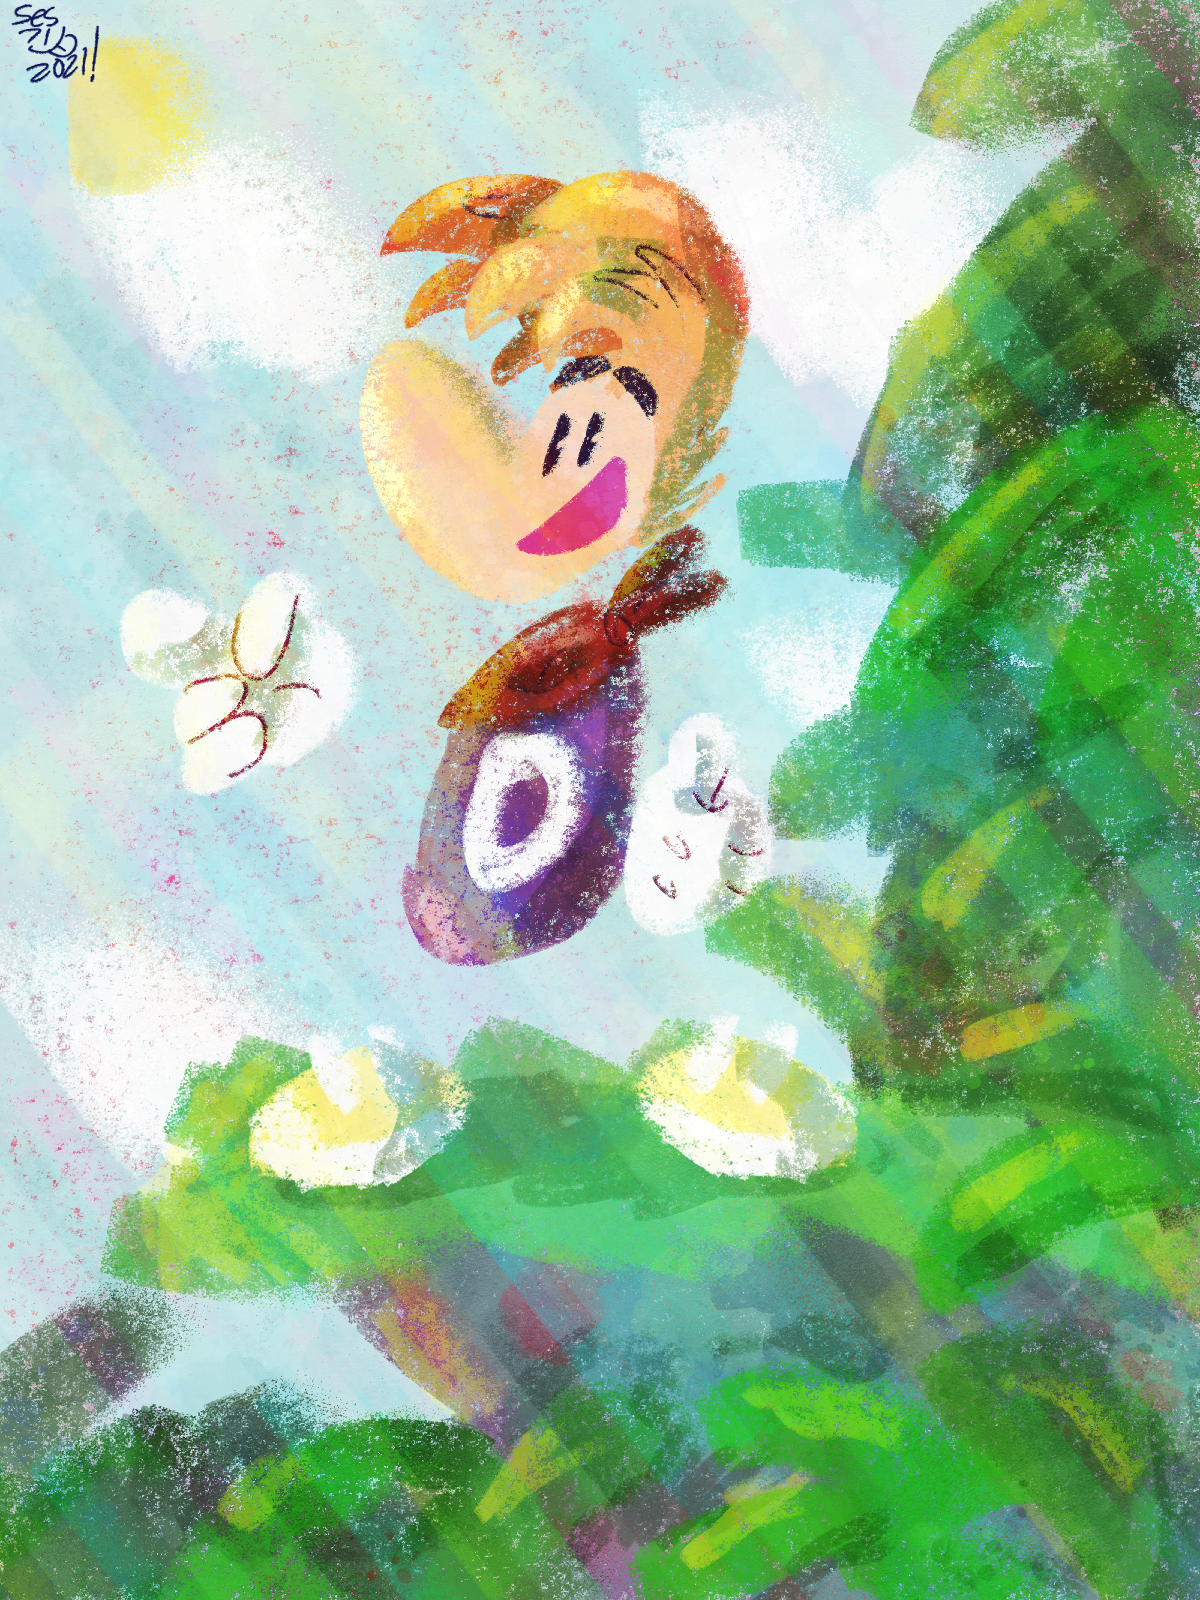 Rayman in the Jungle